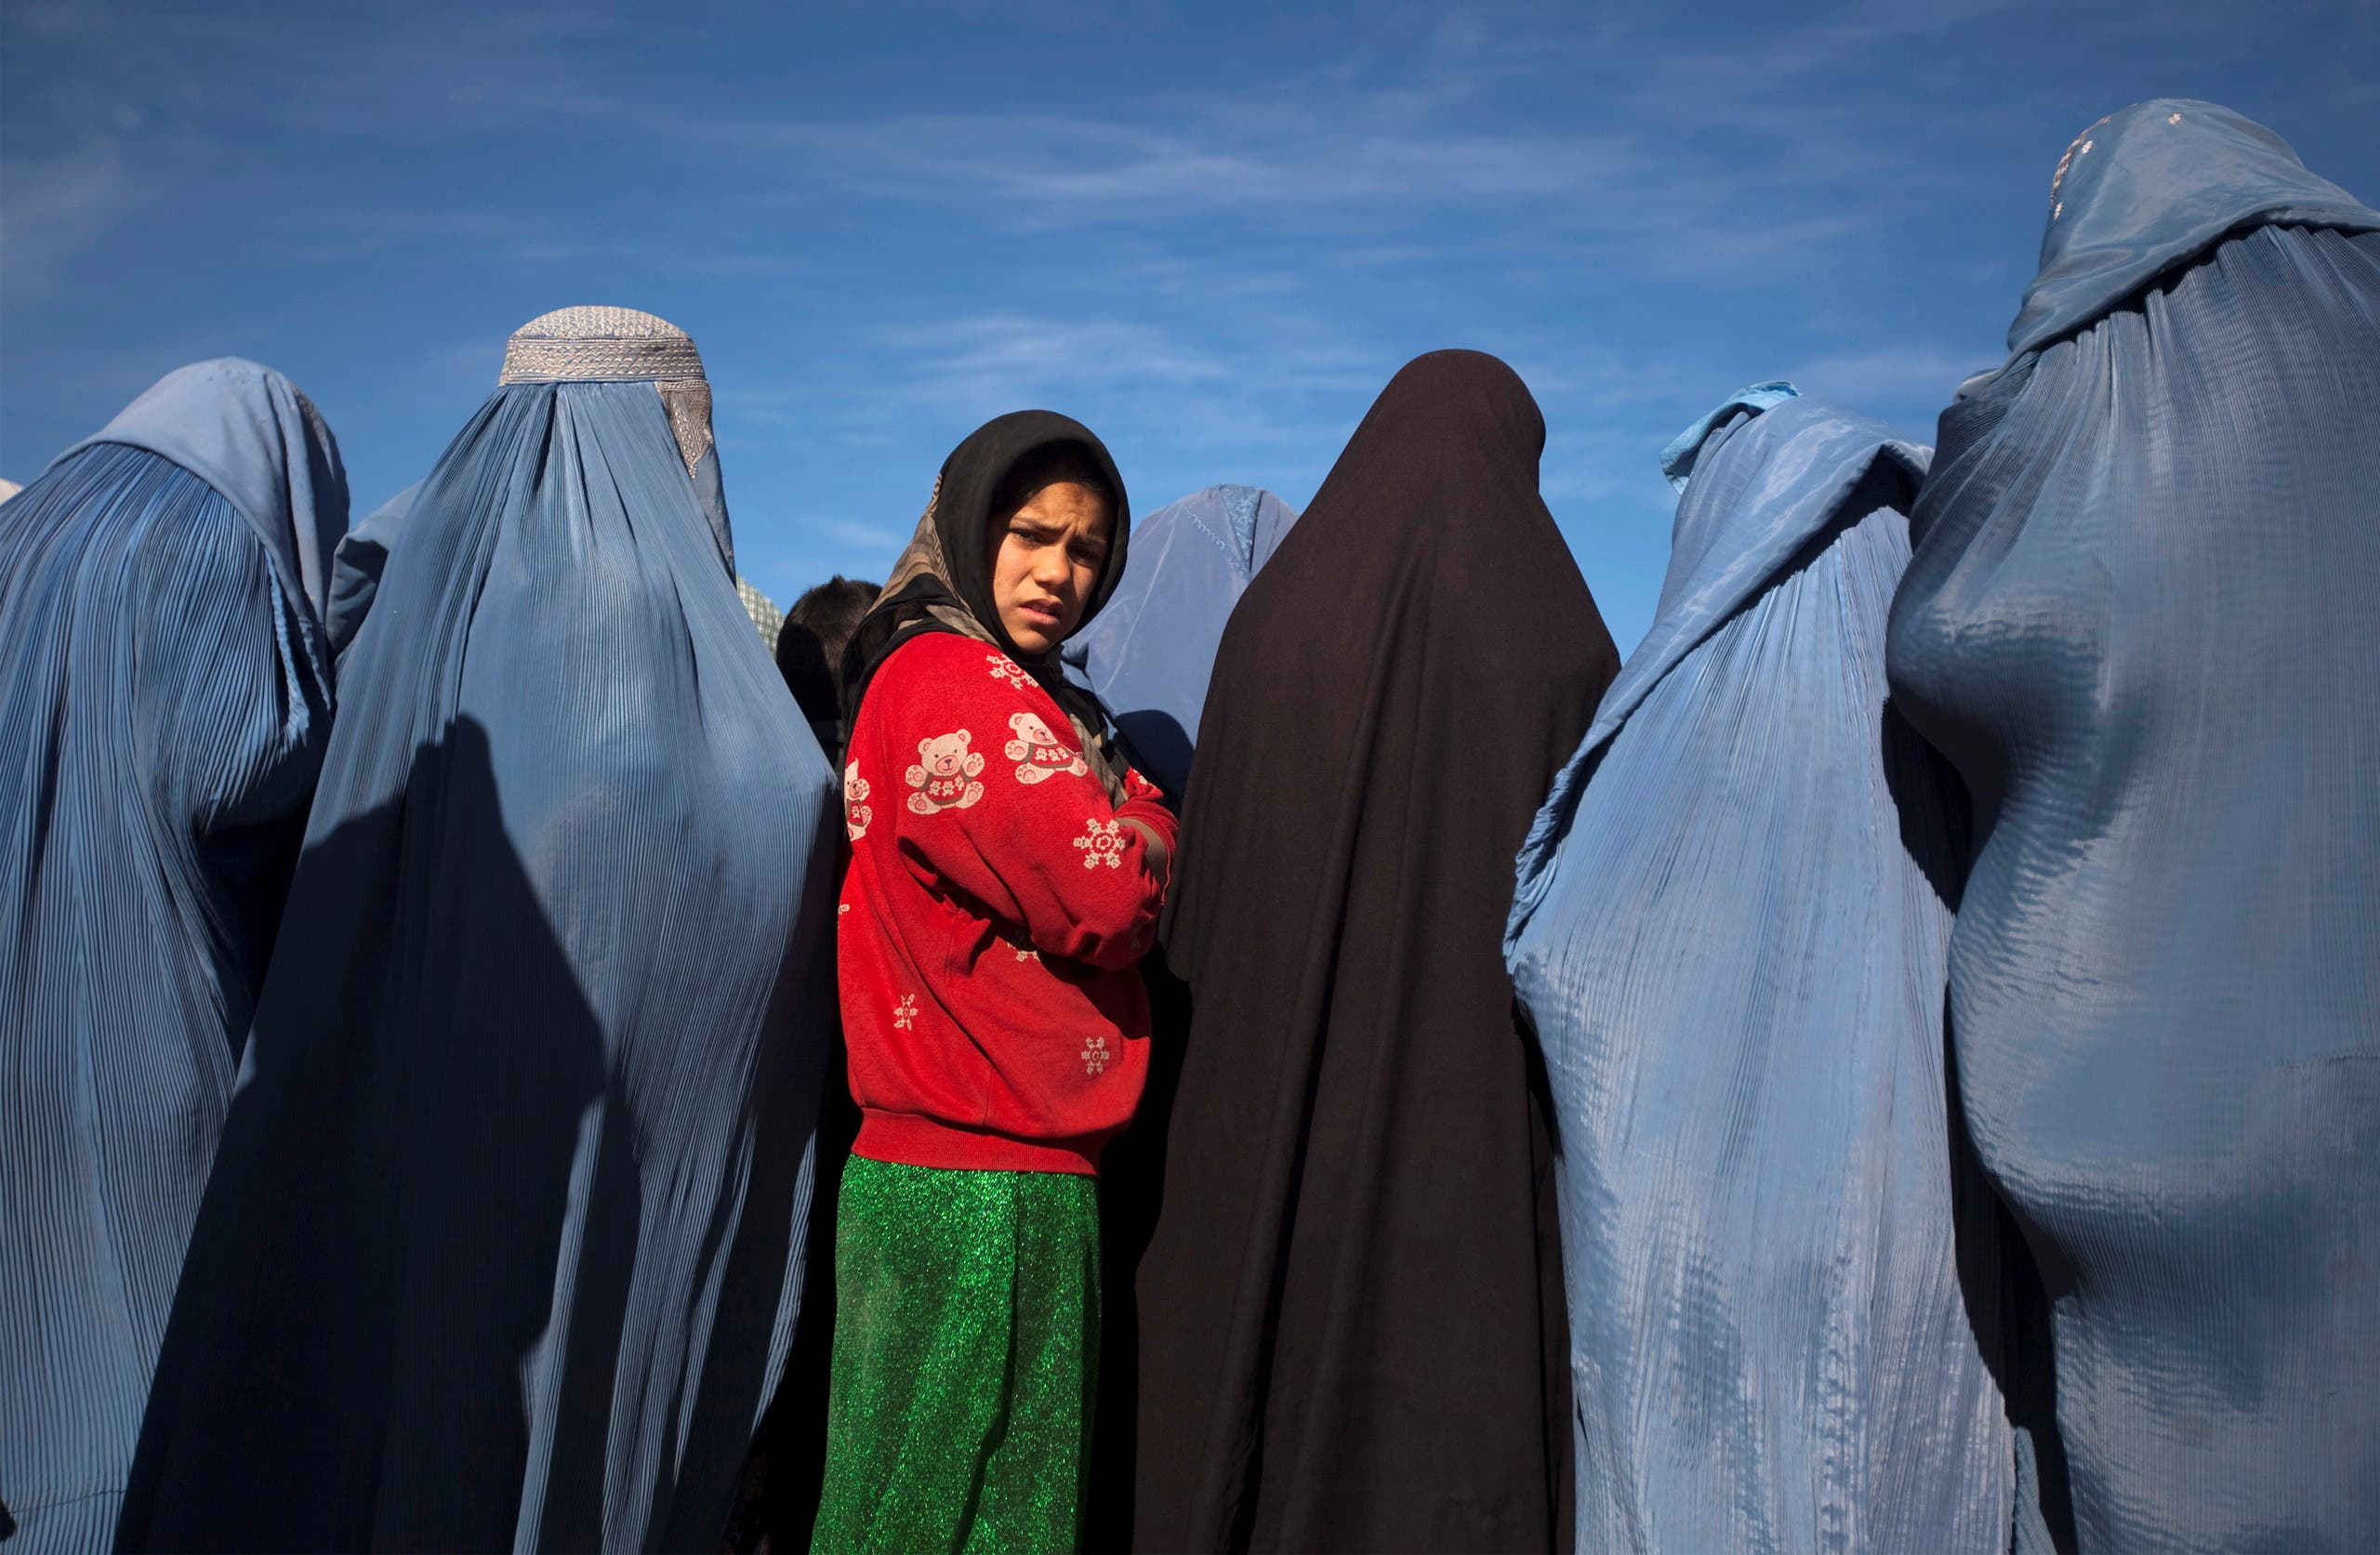 An Afghan girl stands among widows clad in burqas during a cash for work project by humanitarian organisation CARE International in Kabul, Afghanistan January 6, 2010. (Reuters)